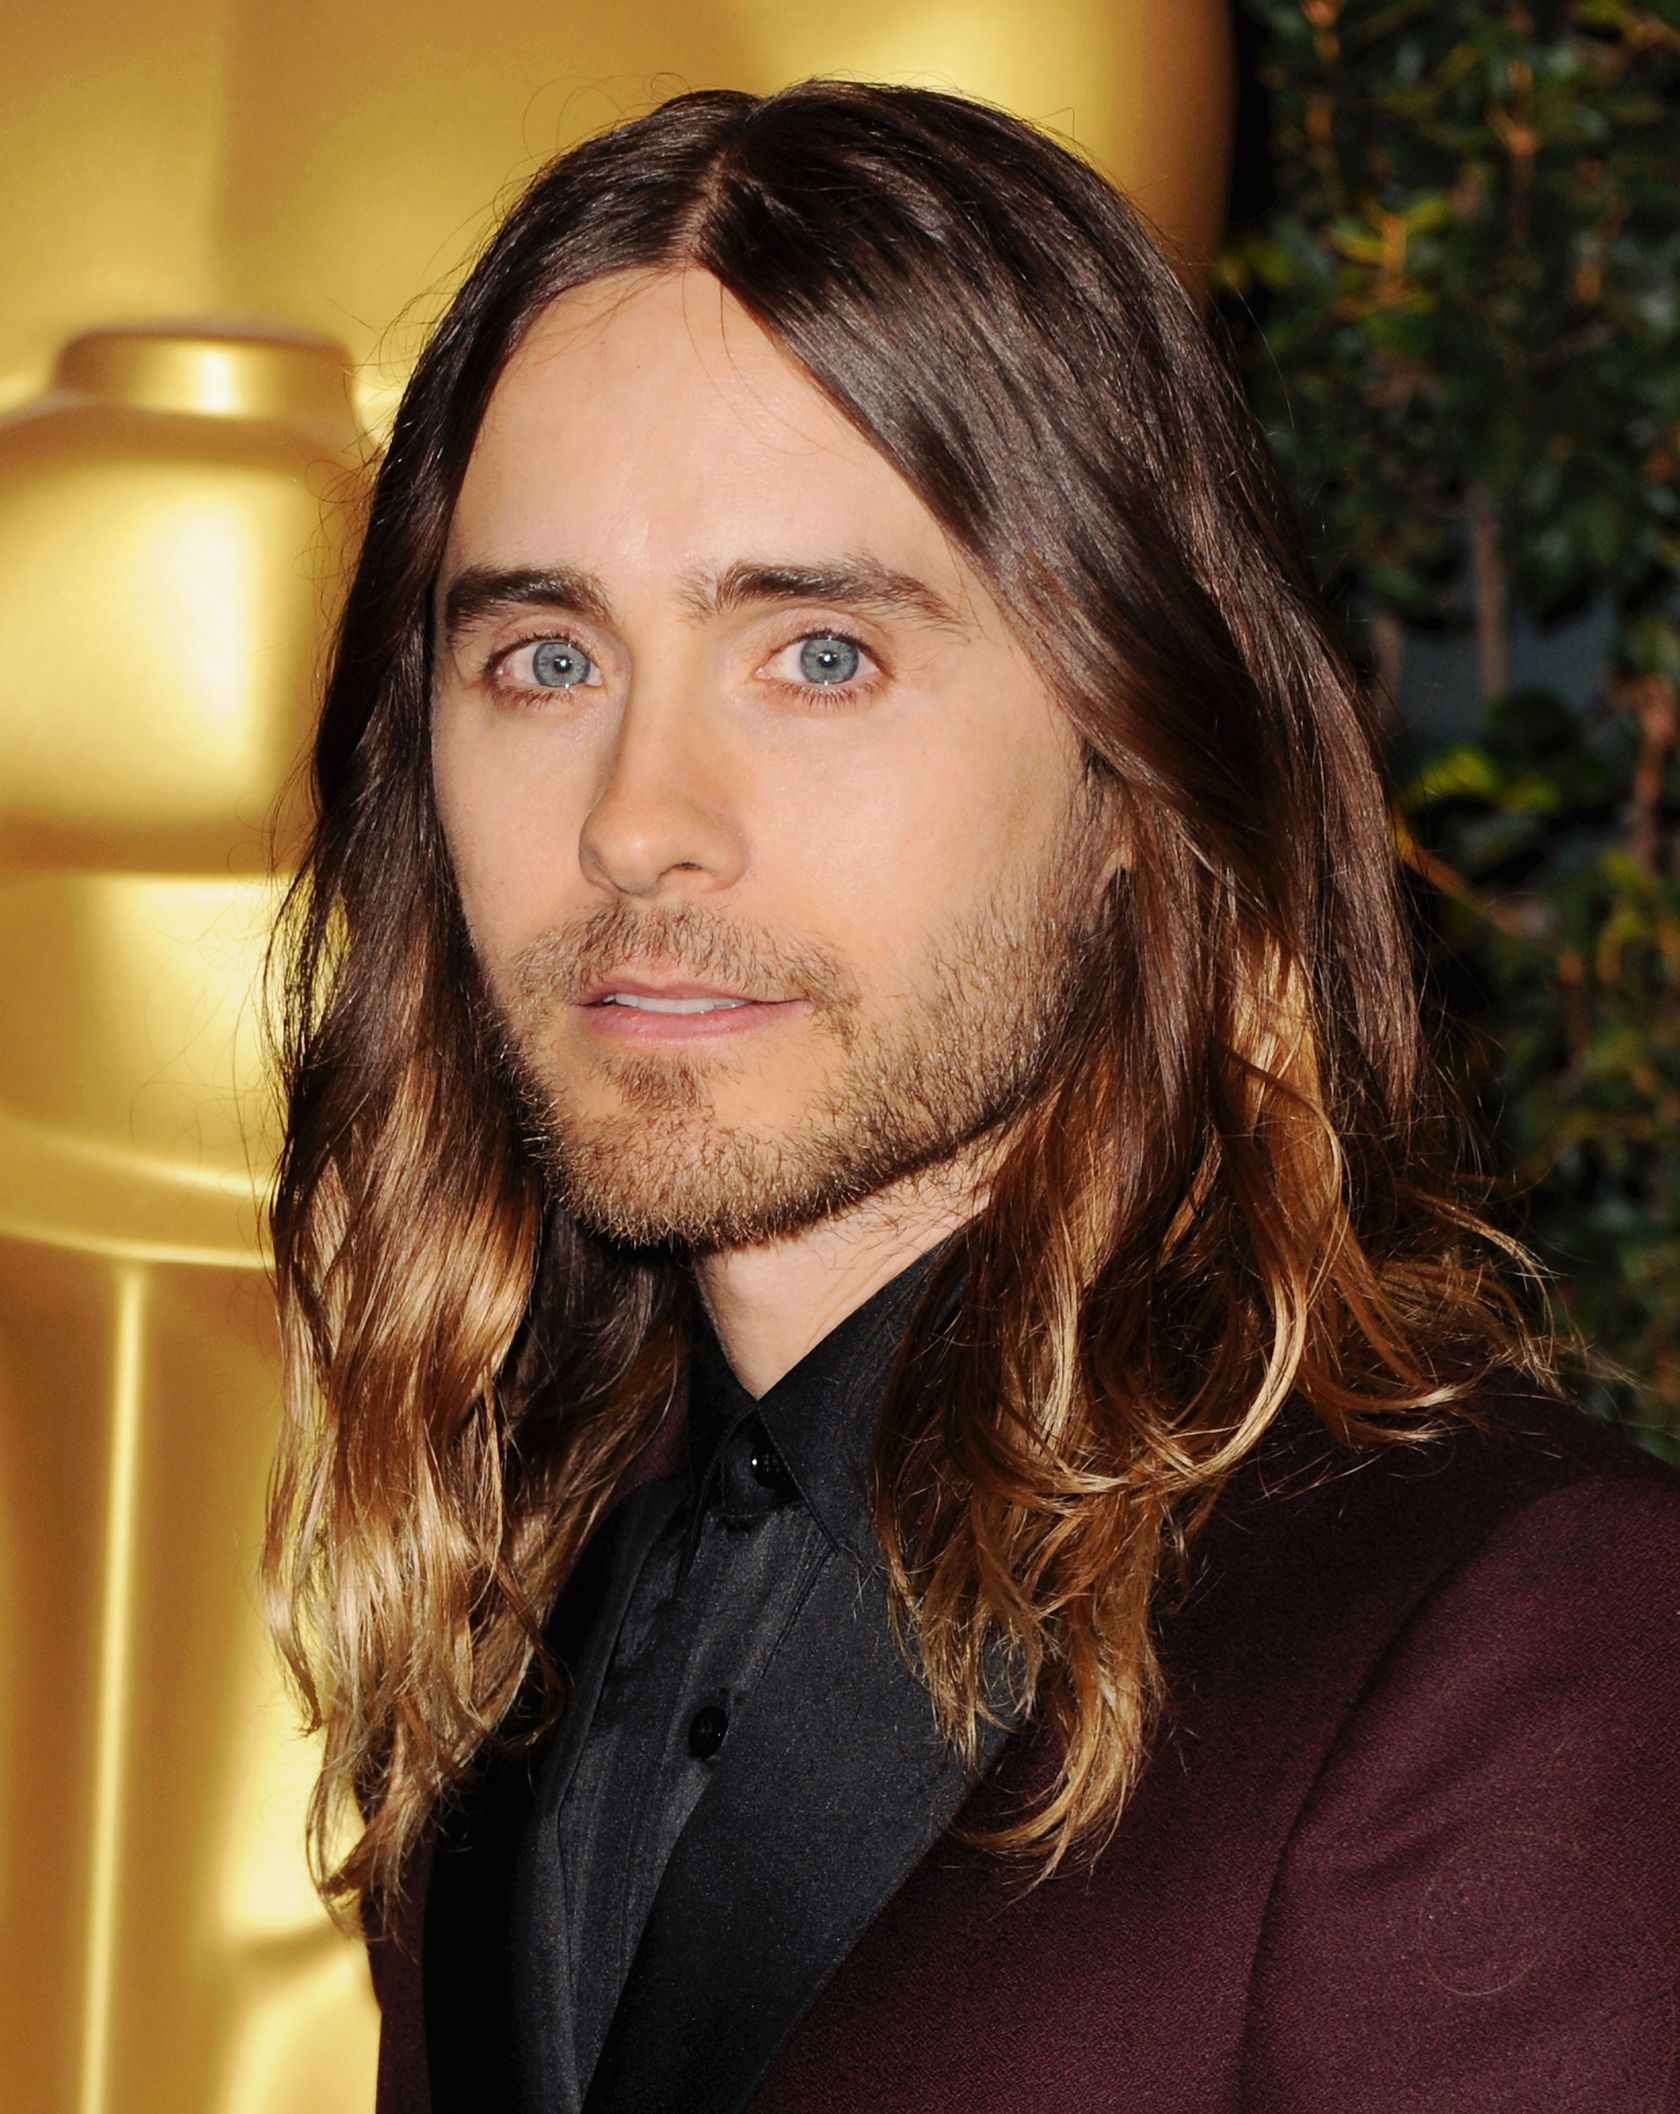 Jared Leto 40 Men That Men Find Beautiful The Cut